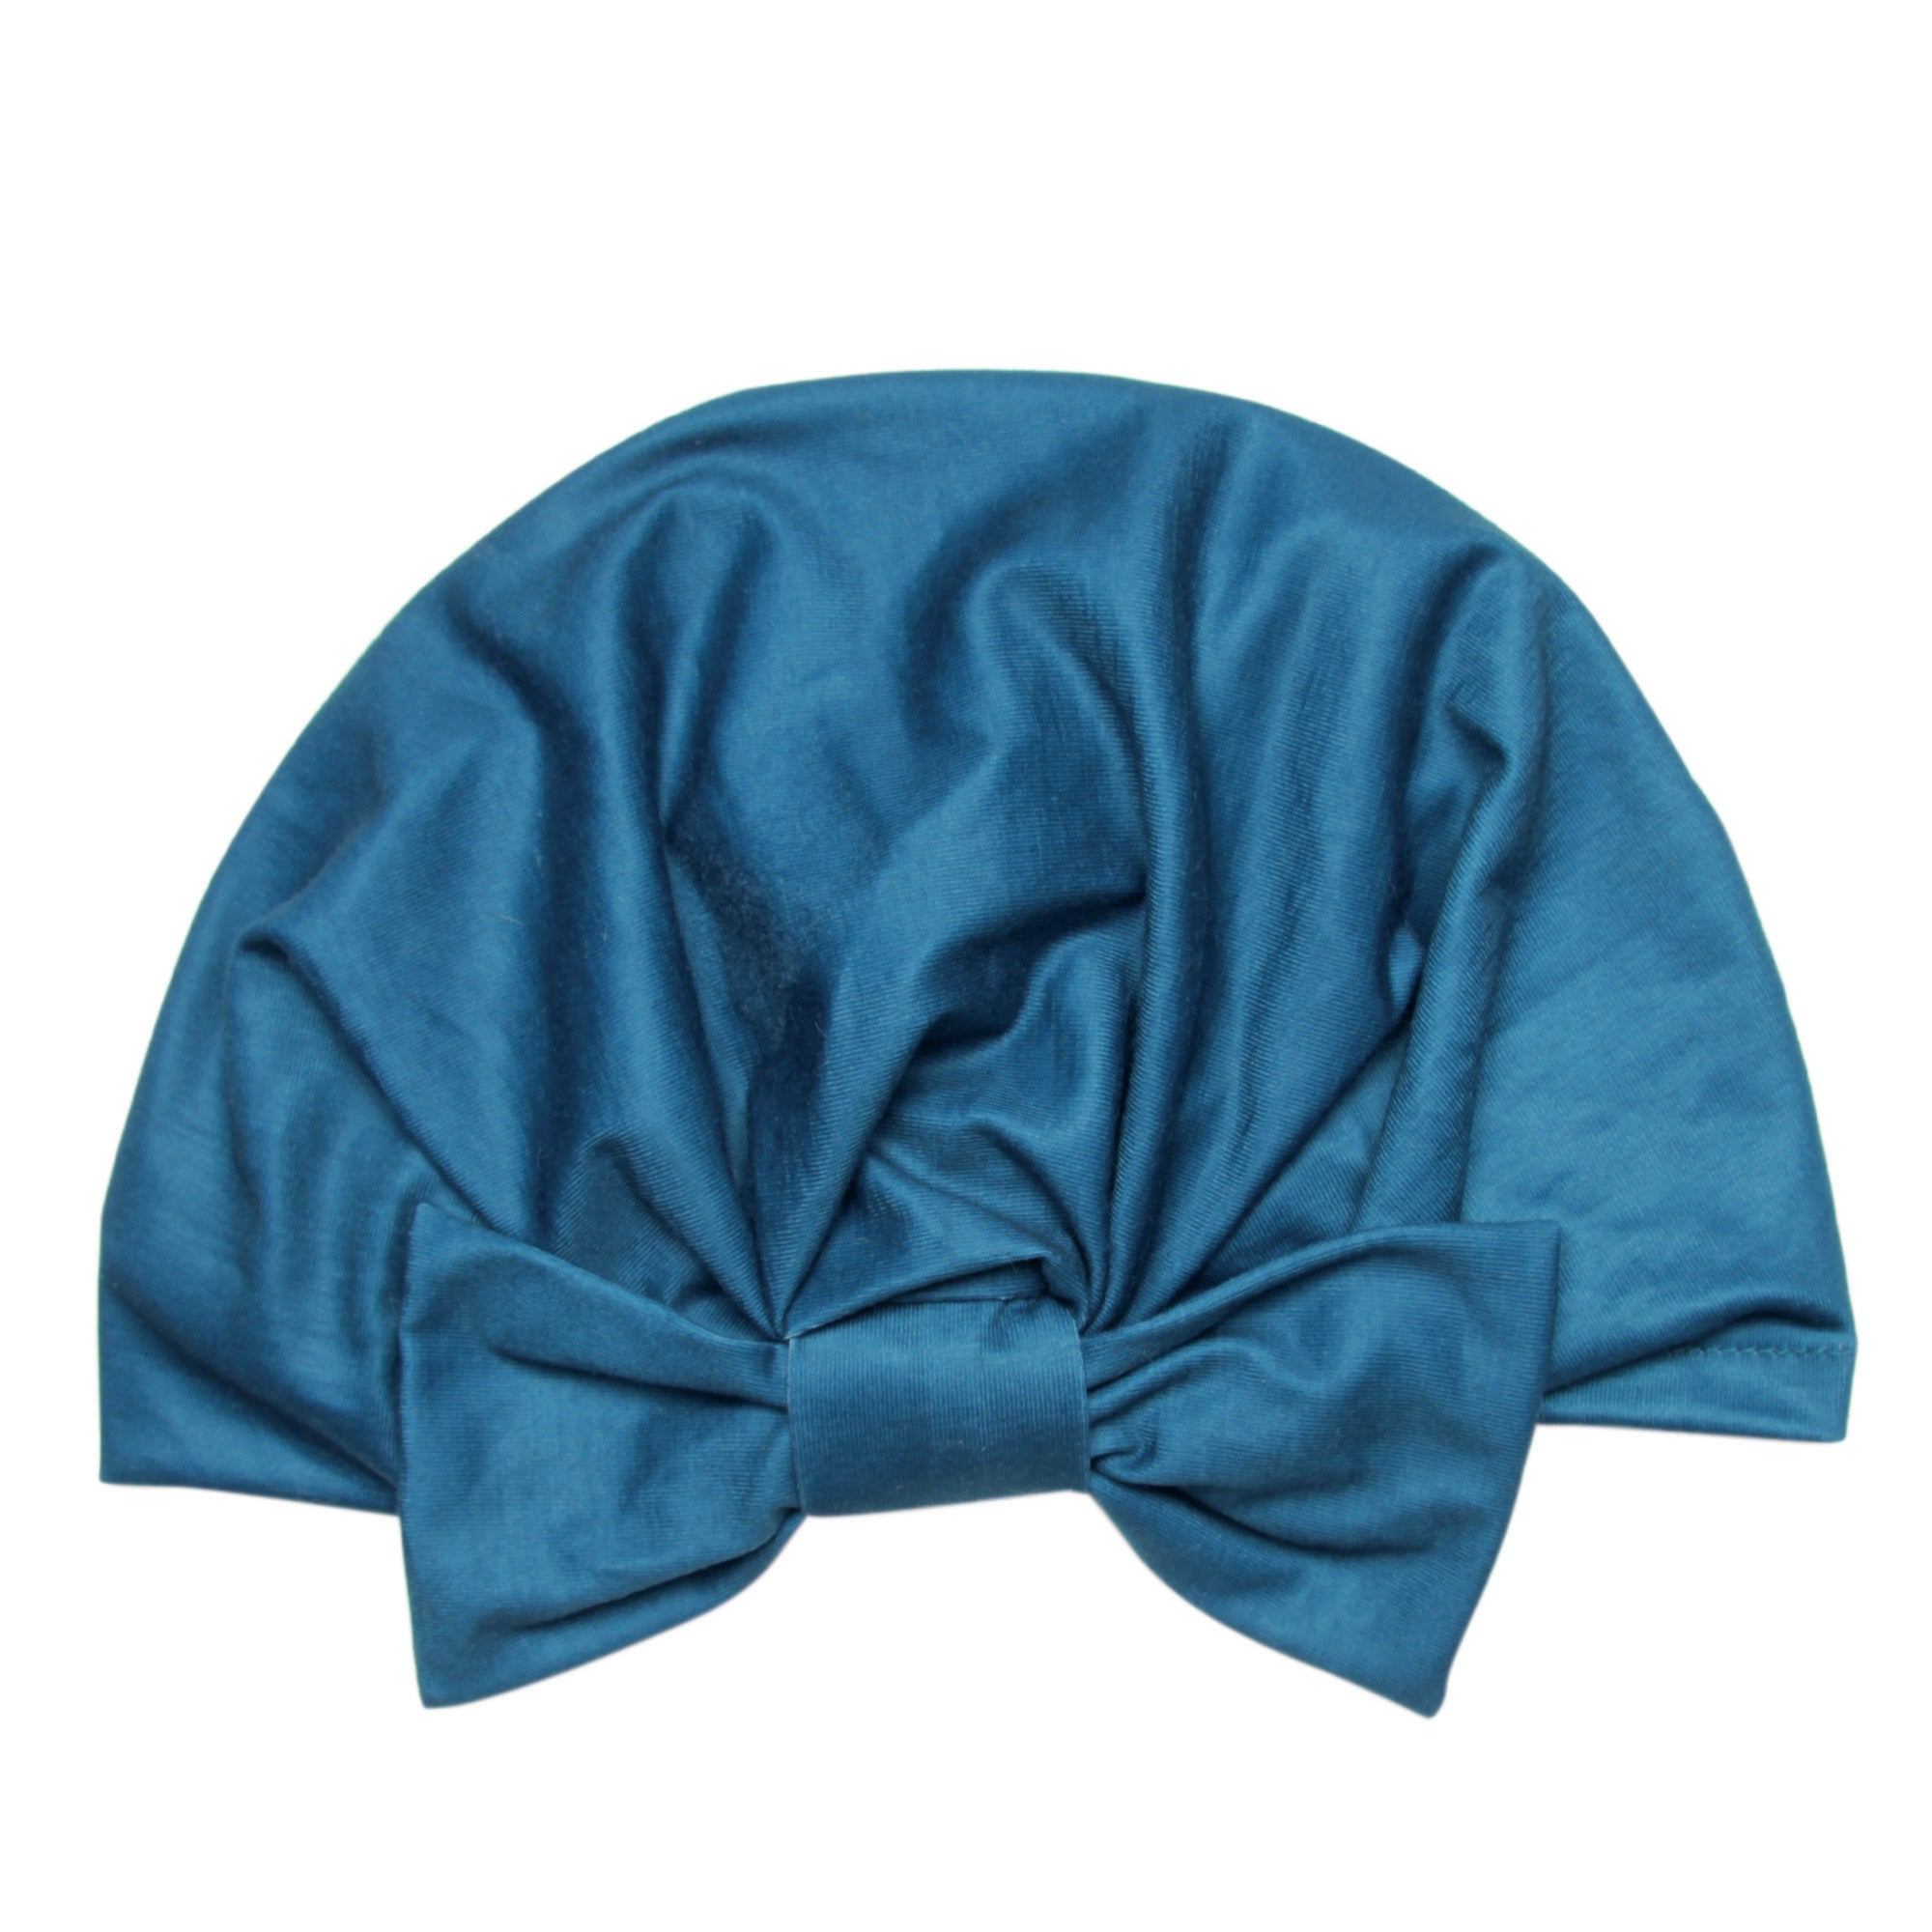 Teal Essence - Fashion Turban